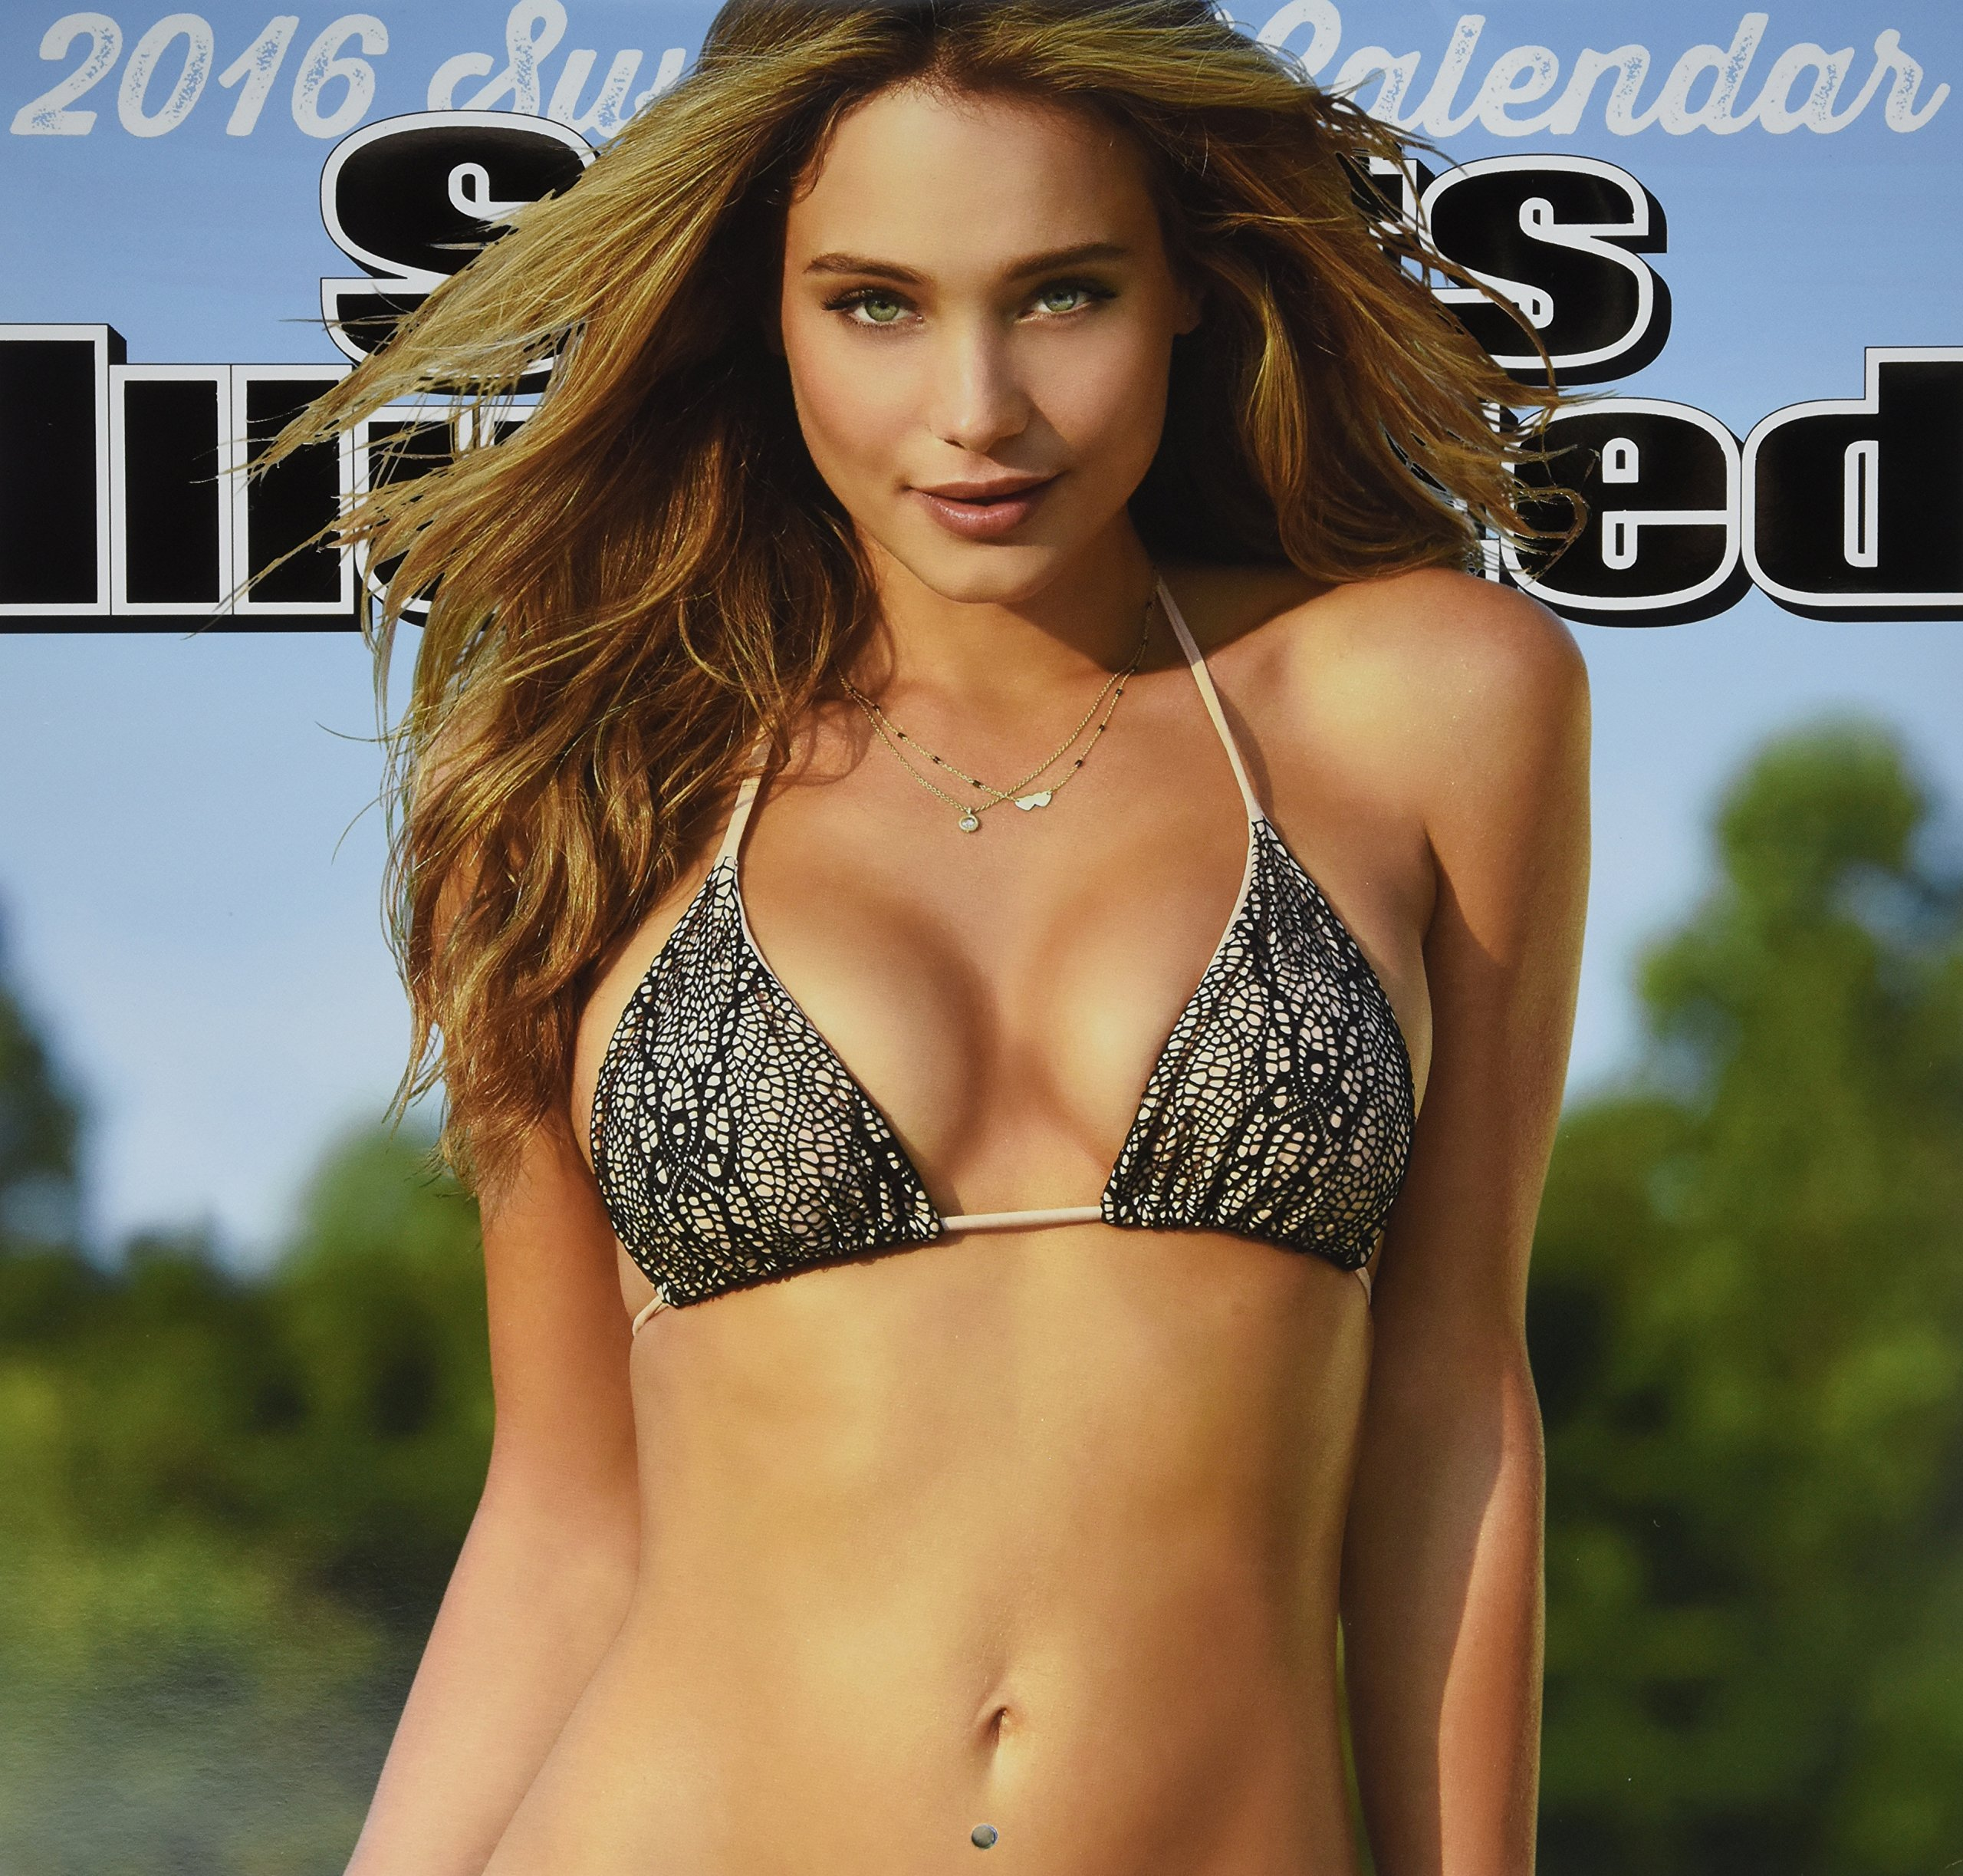 Sports Illustrated Swimsuit 2016 Wall Calendar